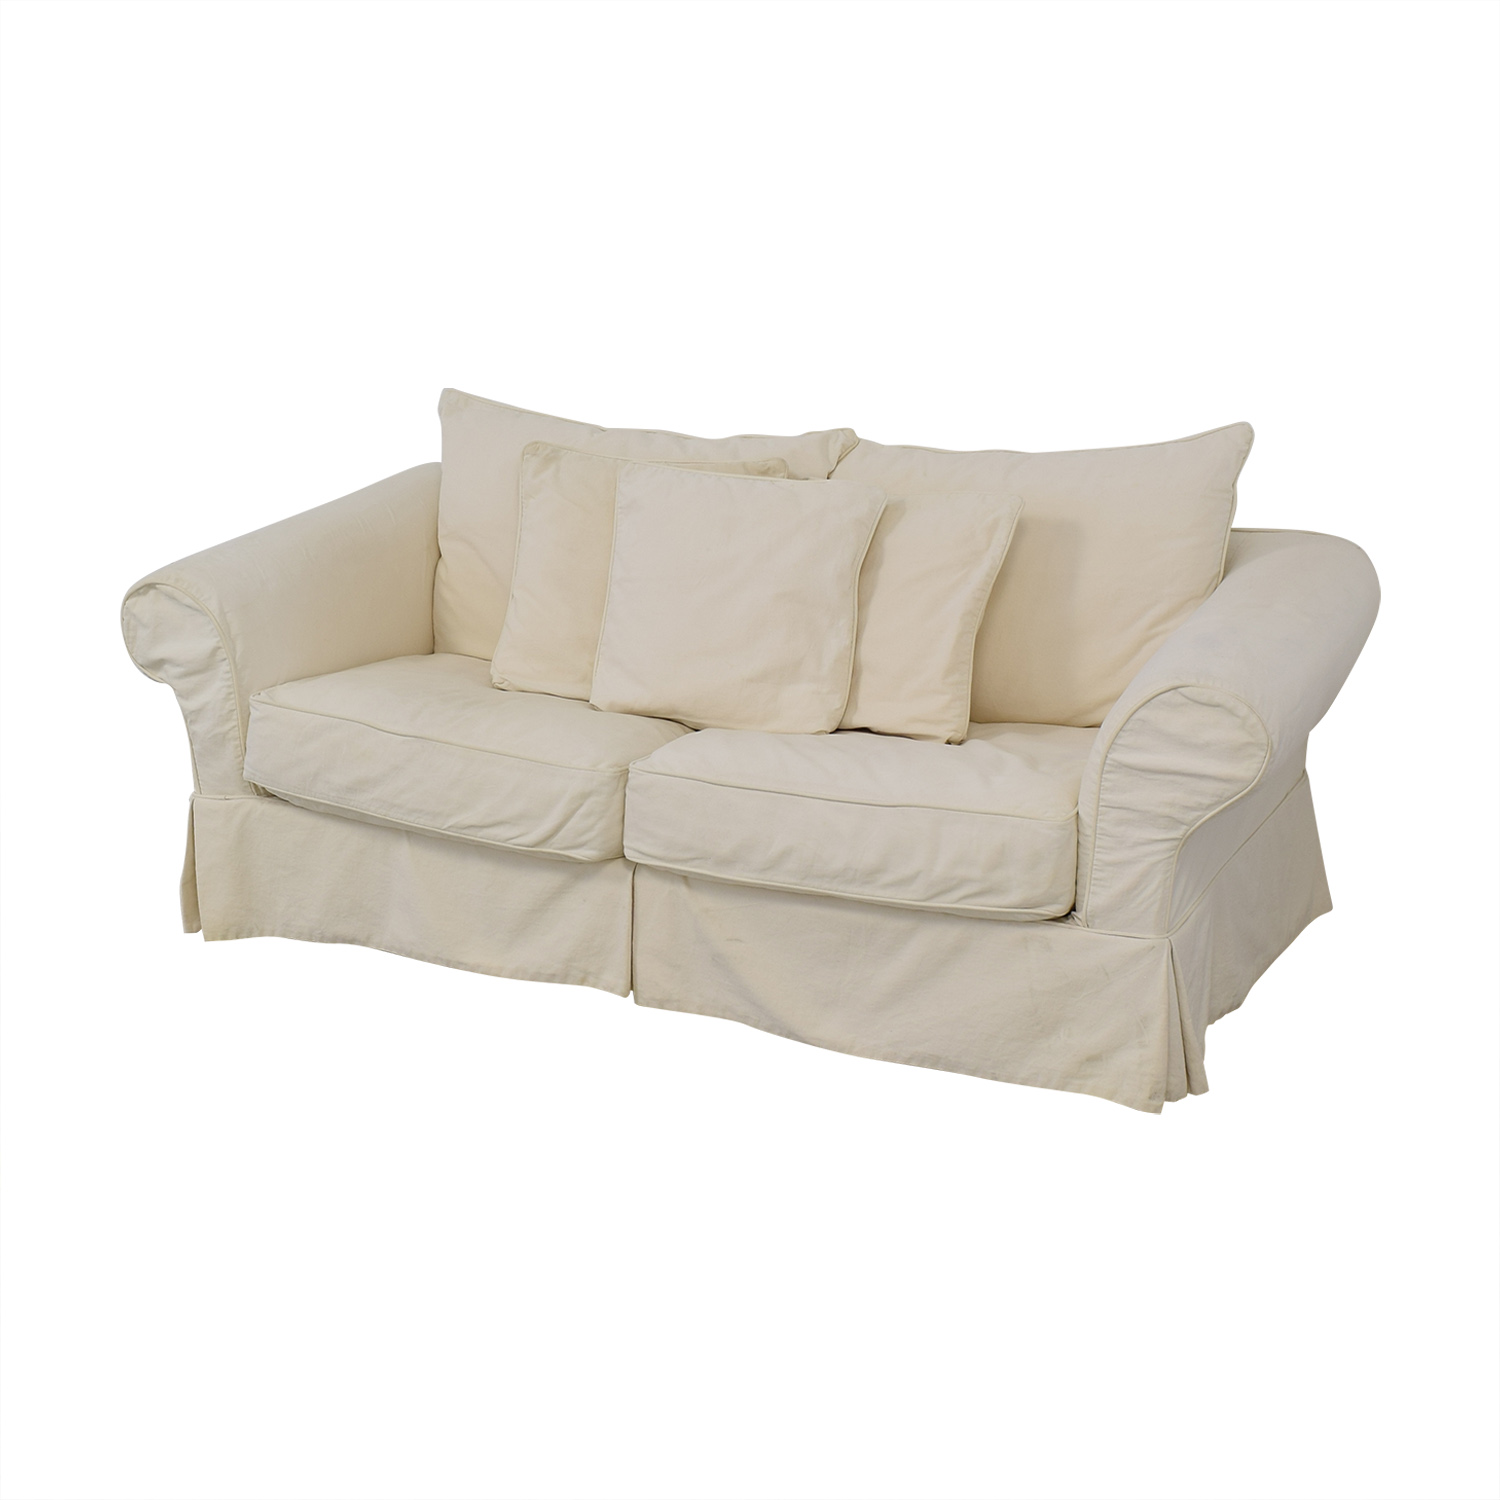 Slipcovered Sleeper Sofa discount